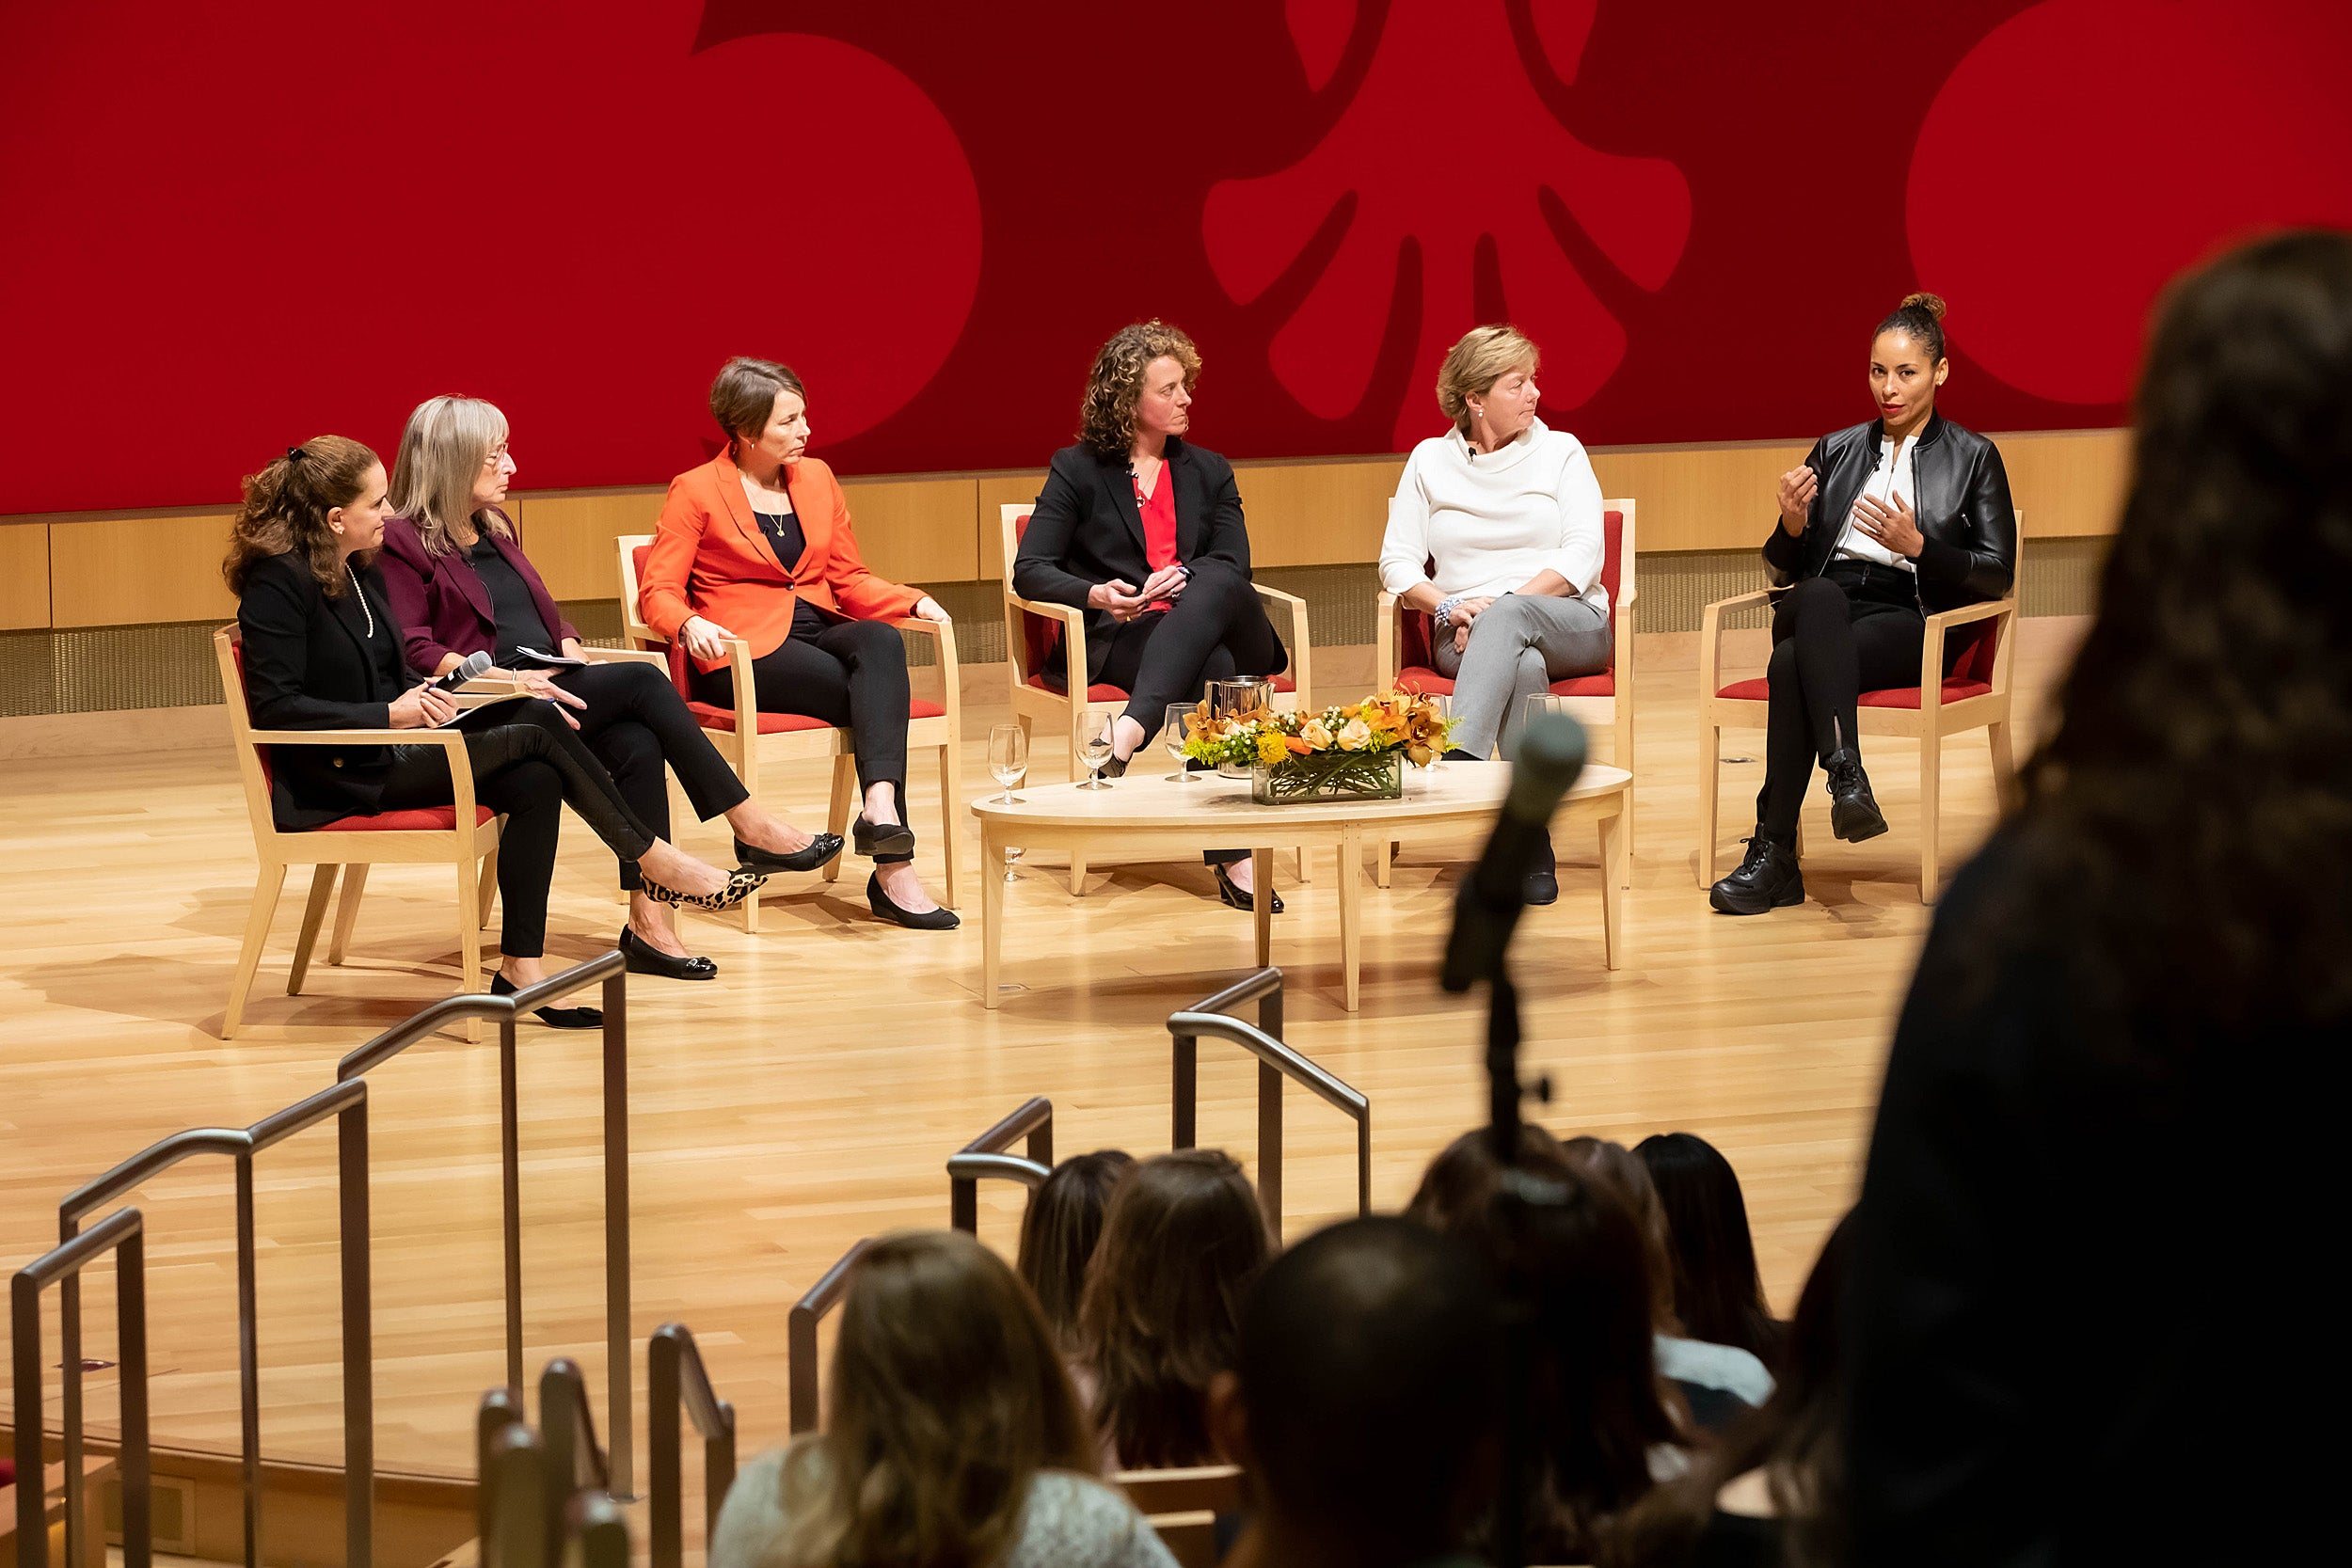 Five notable Harvard star athlete/alumni discuss women in leadership roles and what they've learned from sports about power at Harvard Business School.